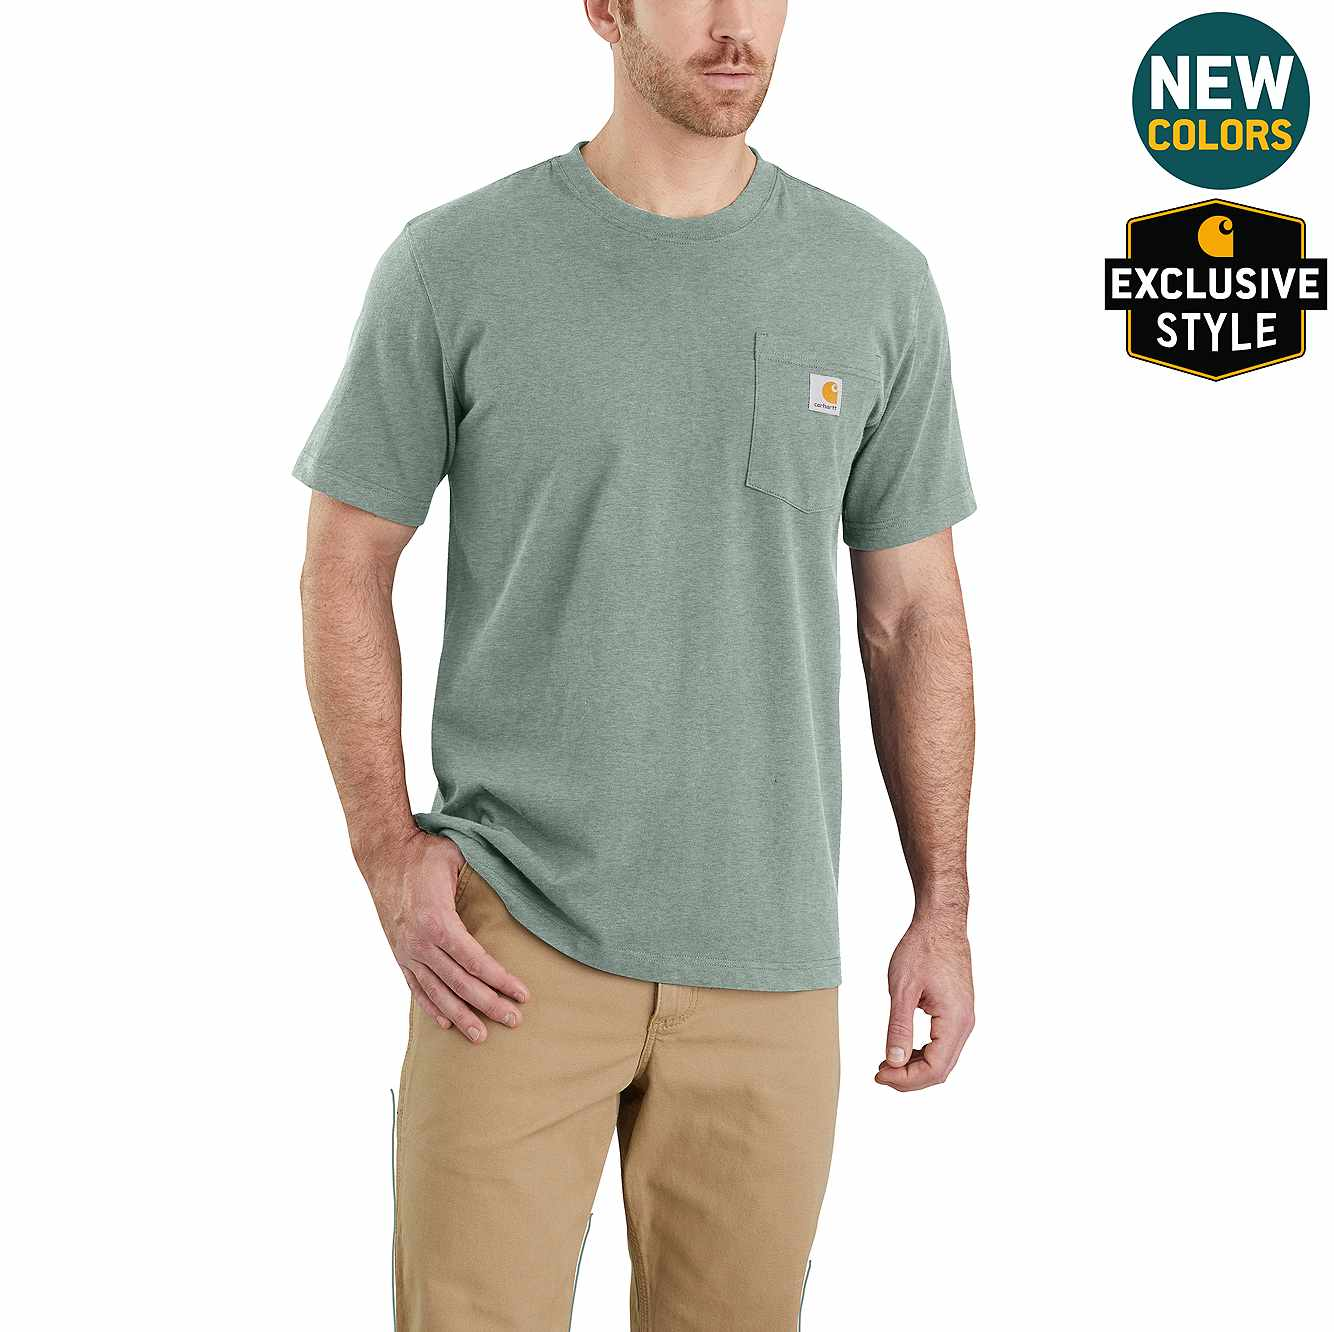 Picture of Relaxed Fit Heavyweight Short-Sleeve Pocket T-Shirt in Leaf Green Snow Heather